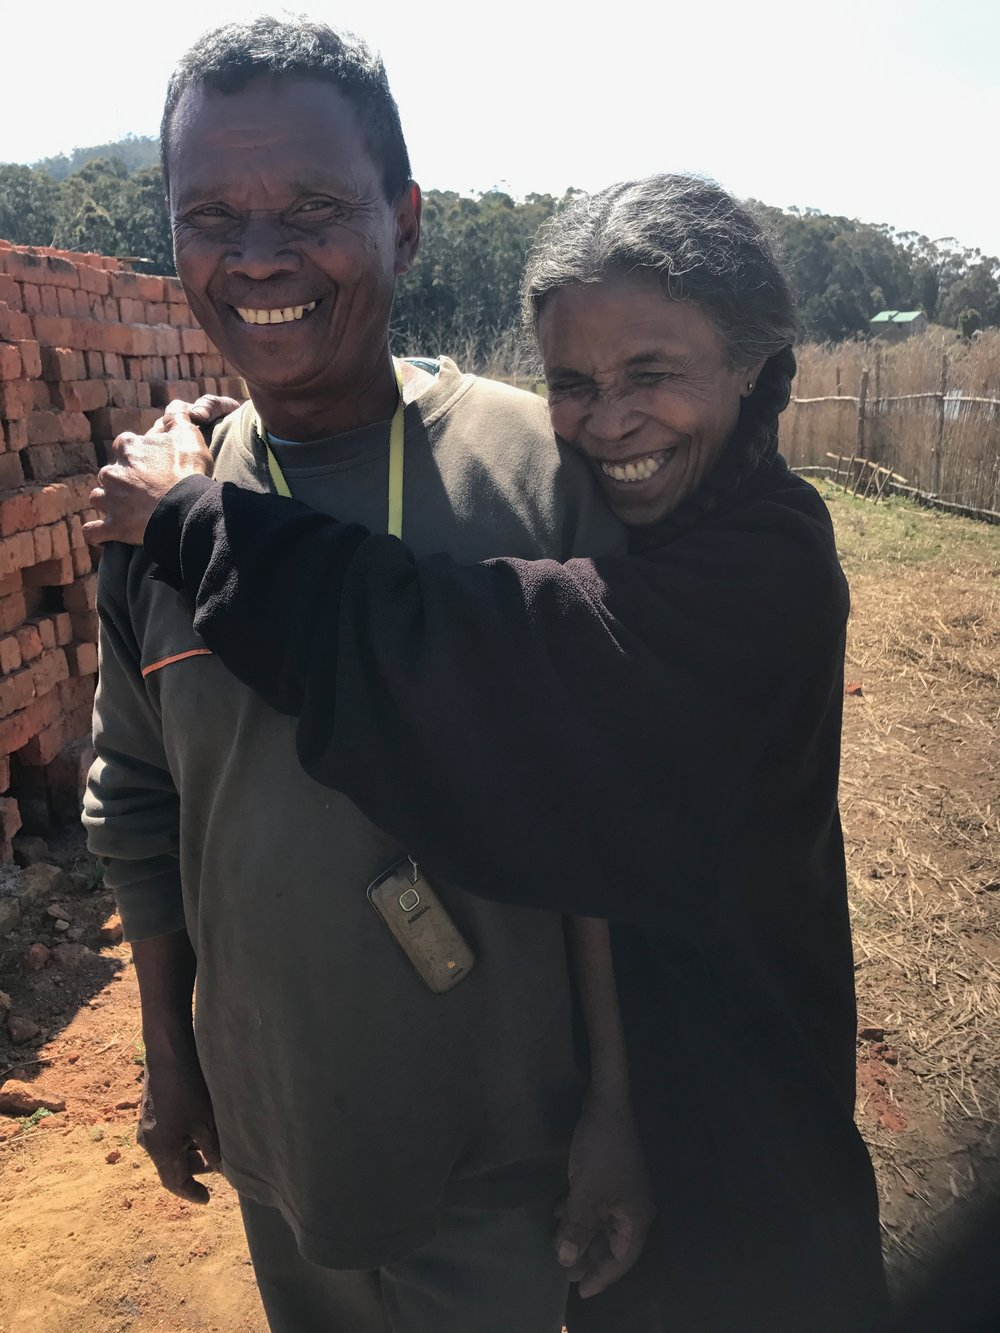 Neny Doline and Dada Michel embracing each other in their farm.